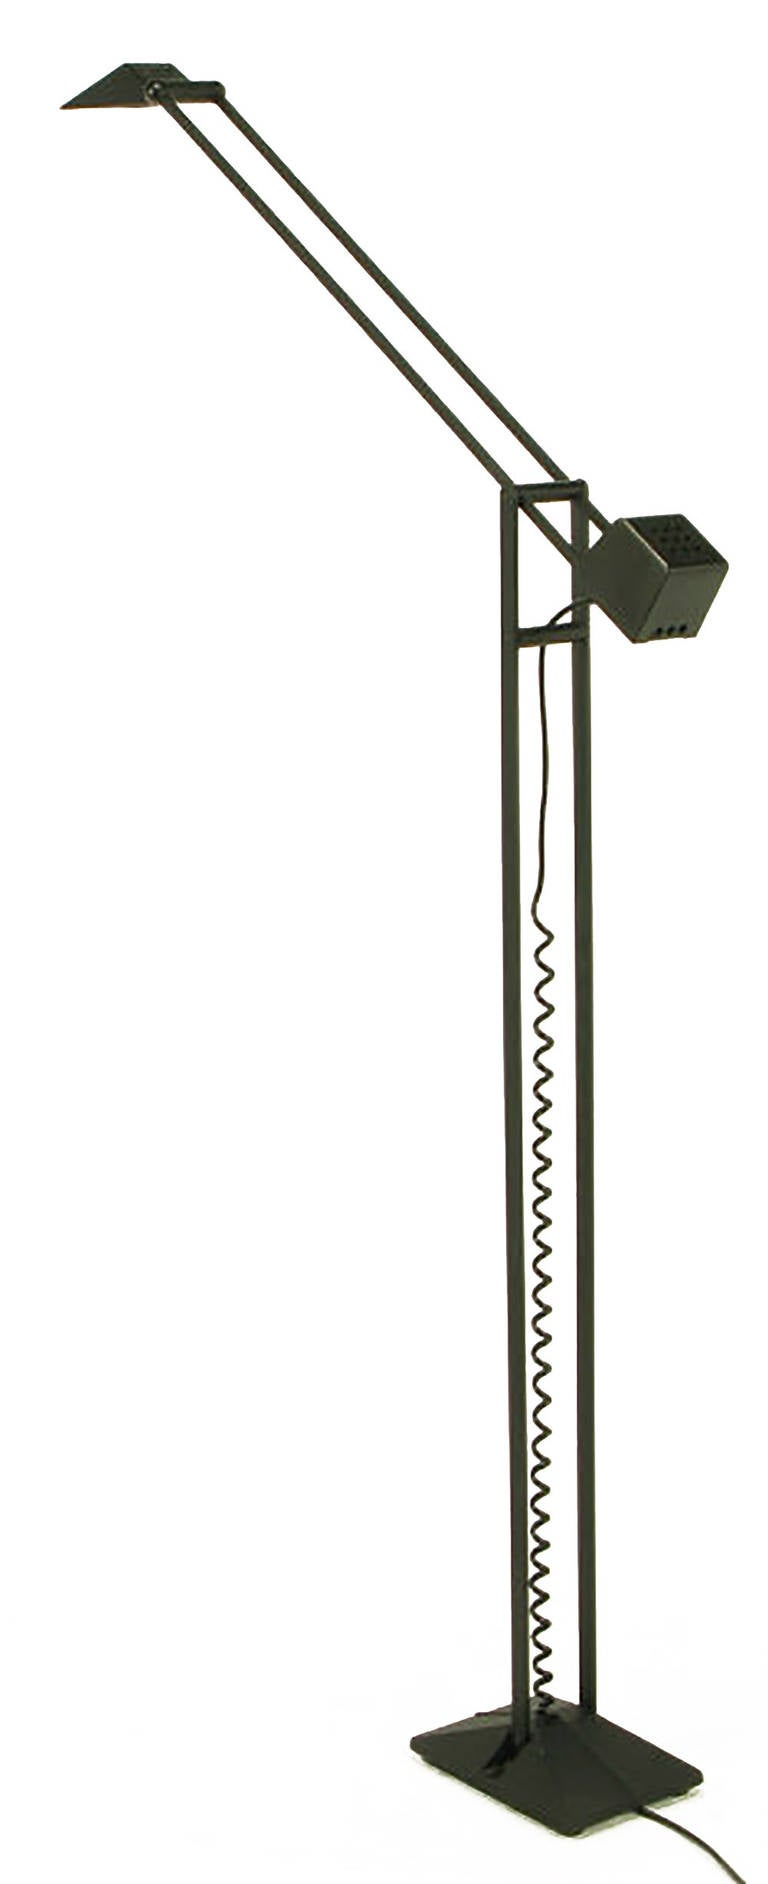 Black Cast Iron and Steel Articulated Floor Lamp by Artup In Good Condition For Sale In Chicago, IL